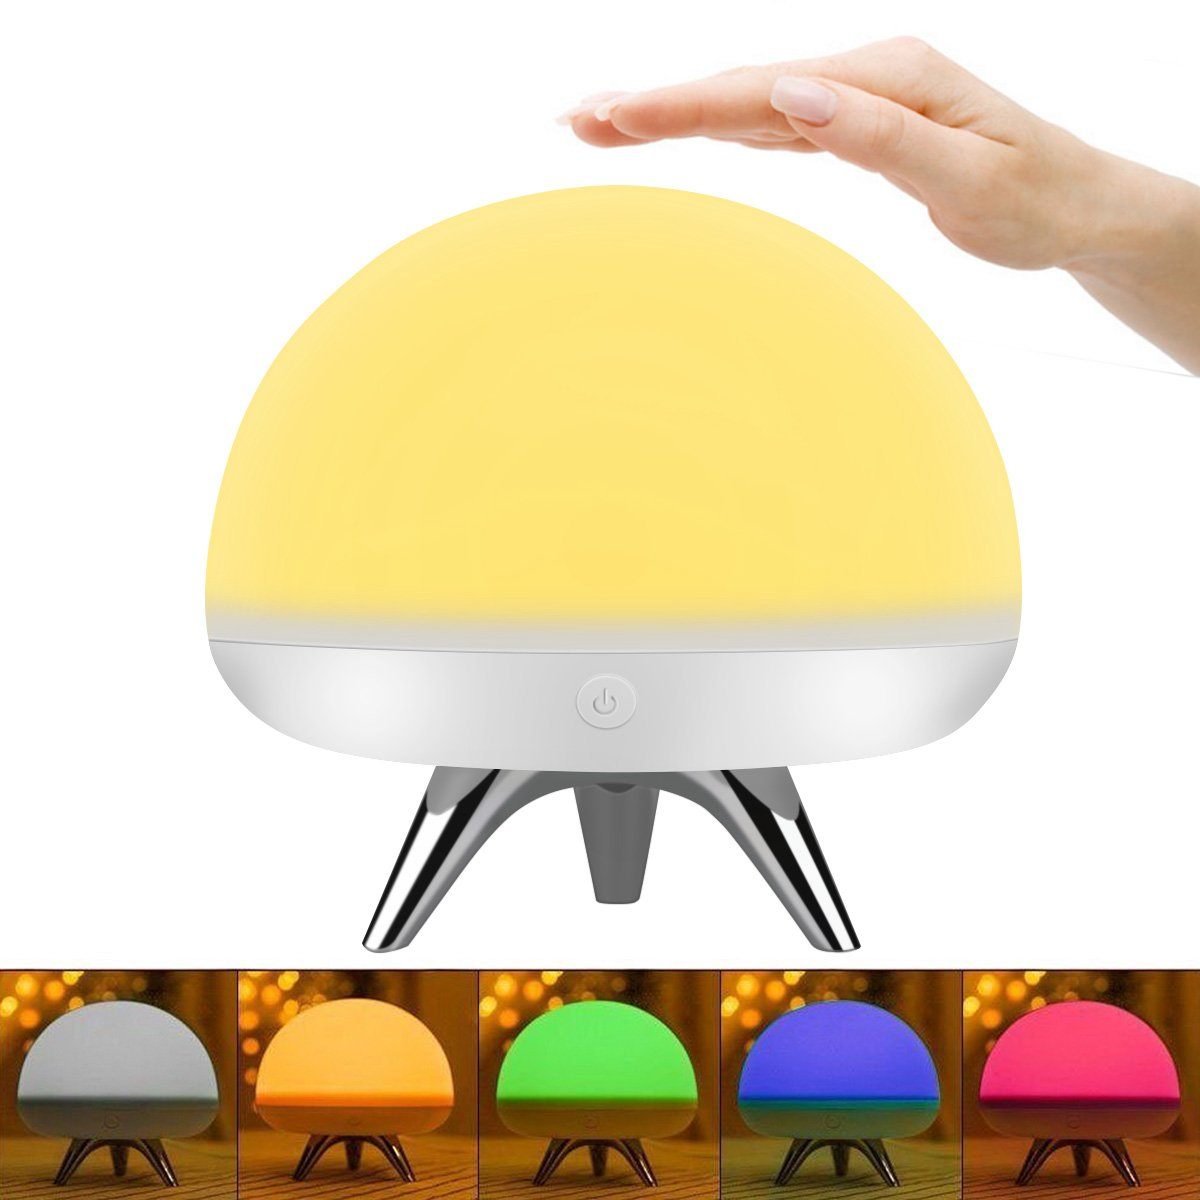 Intsun Children Kids Night Light, LED Silicone Toy Nightlight, Baby Rooms Nursery Lamps, Bedroom Touch Sensor Table Lamps Christmas Gifts with 4 Lighting Modes, 5 Colors,USB Rechargeable